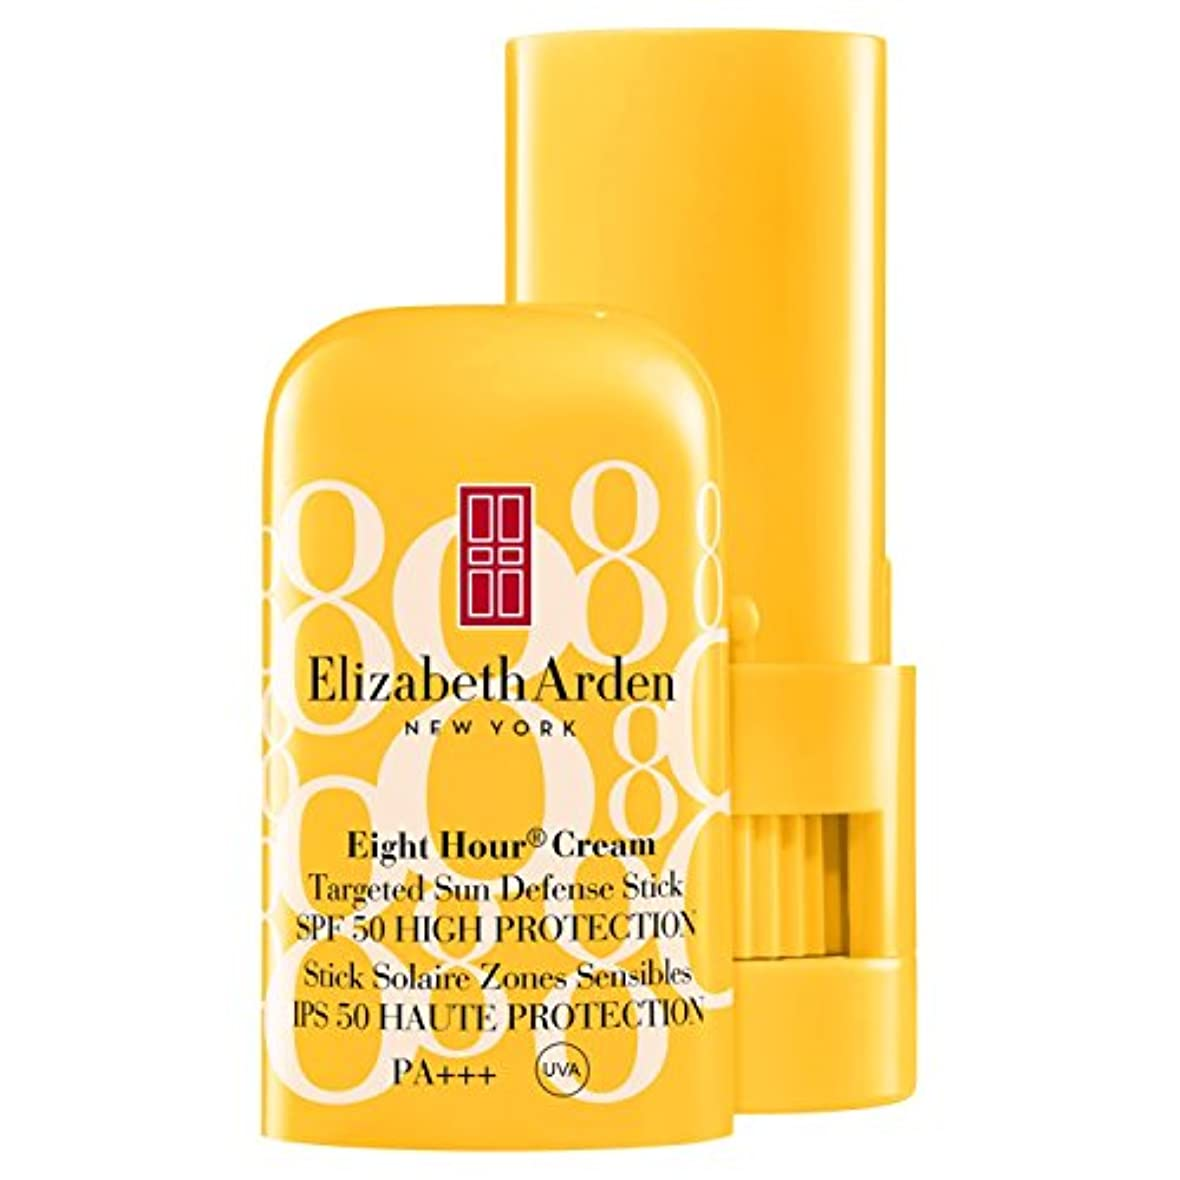 蒸気起きている中間Elizabeth Arden Eight Hour? Cream Targeted Sun Defense Stick SPF50 High Protection 15ml (Pack of 6) - エリザベスアーデン...